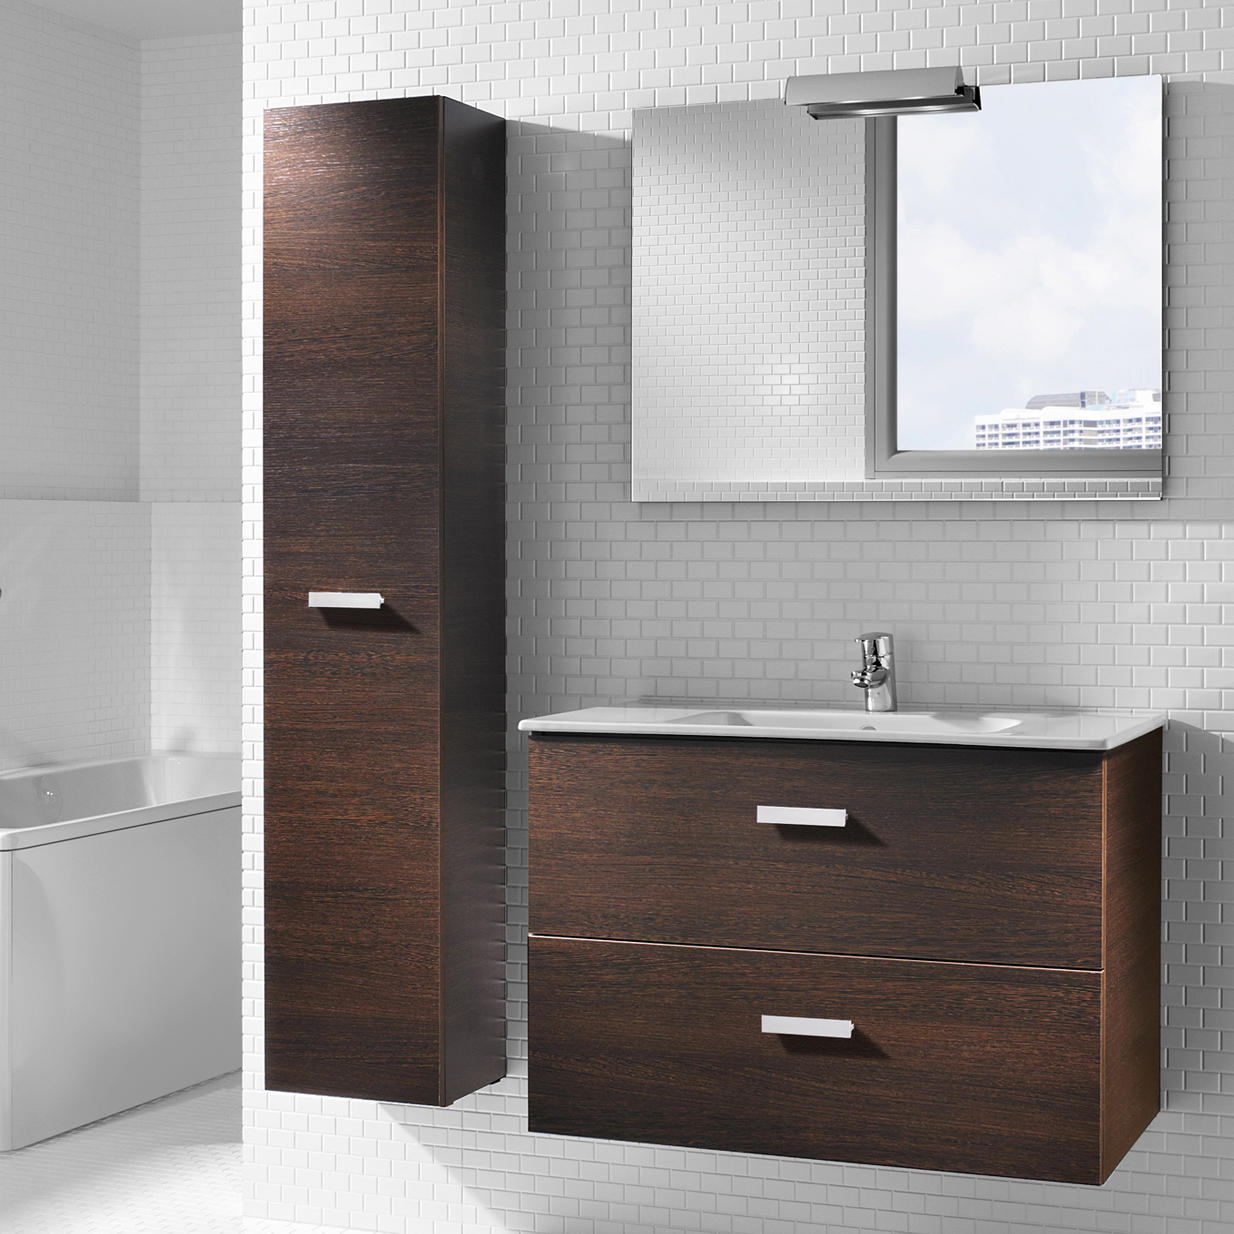 victoria unik vanity units from roca architonic